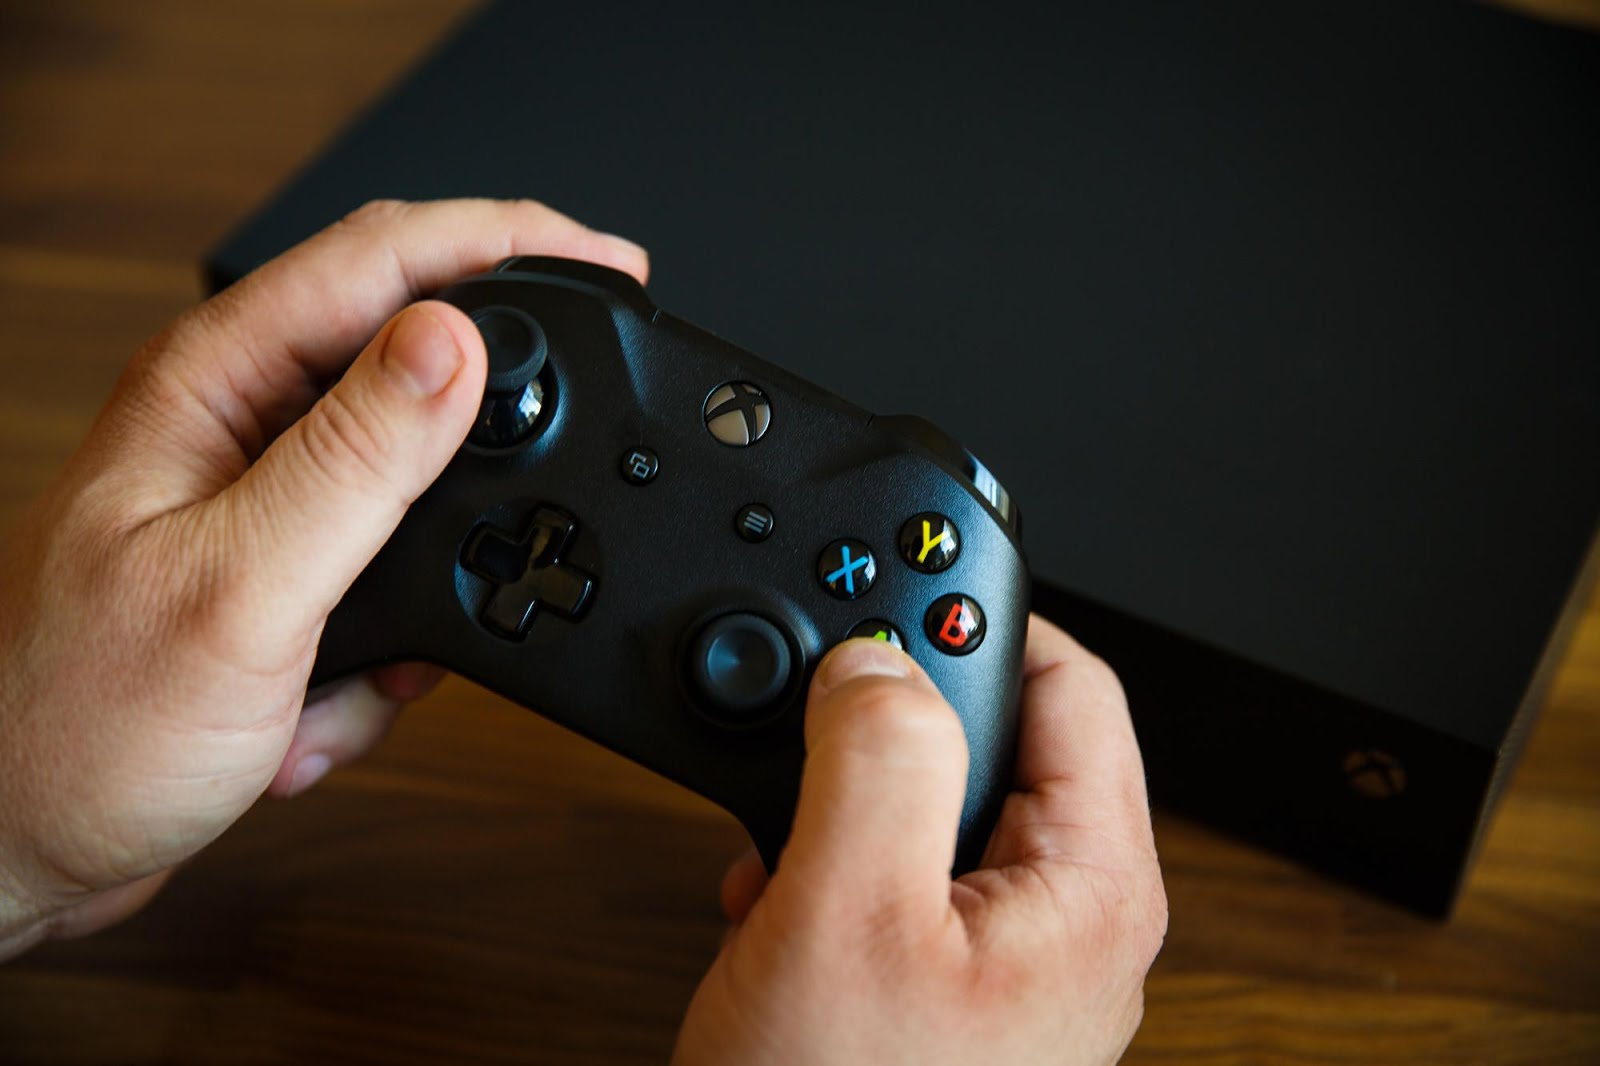 Xbox Game Bar's new feature is rolling out for Windows 10